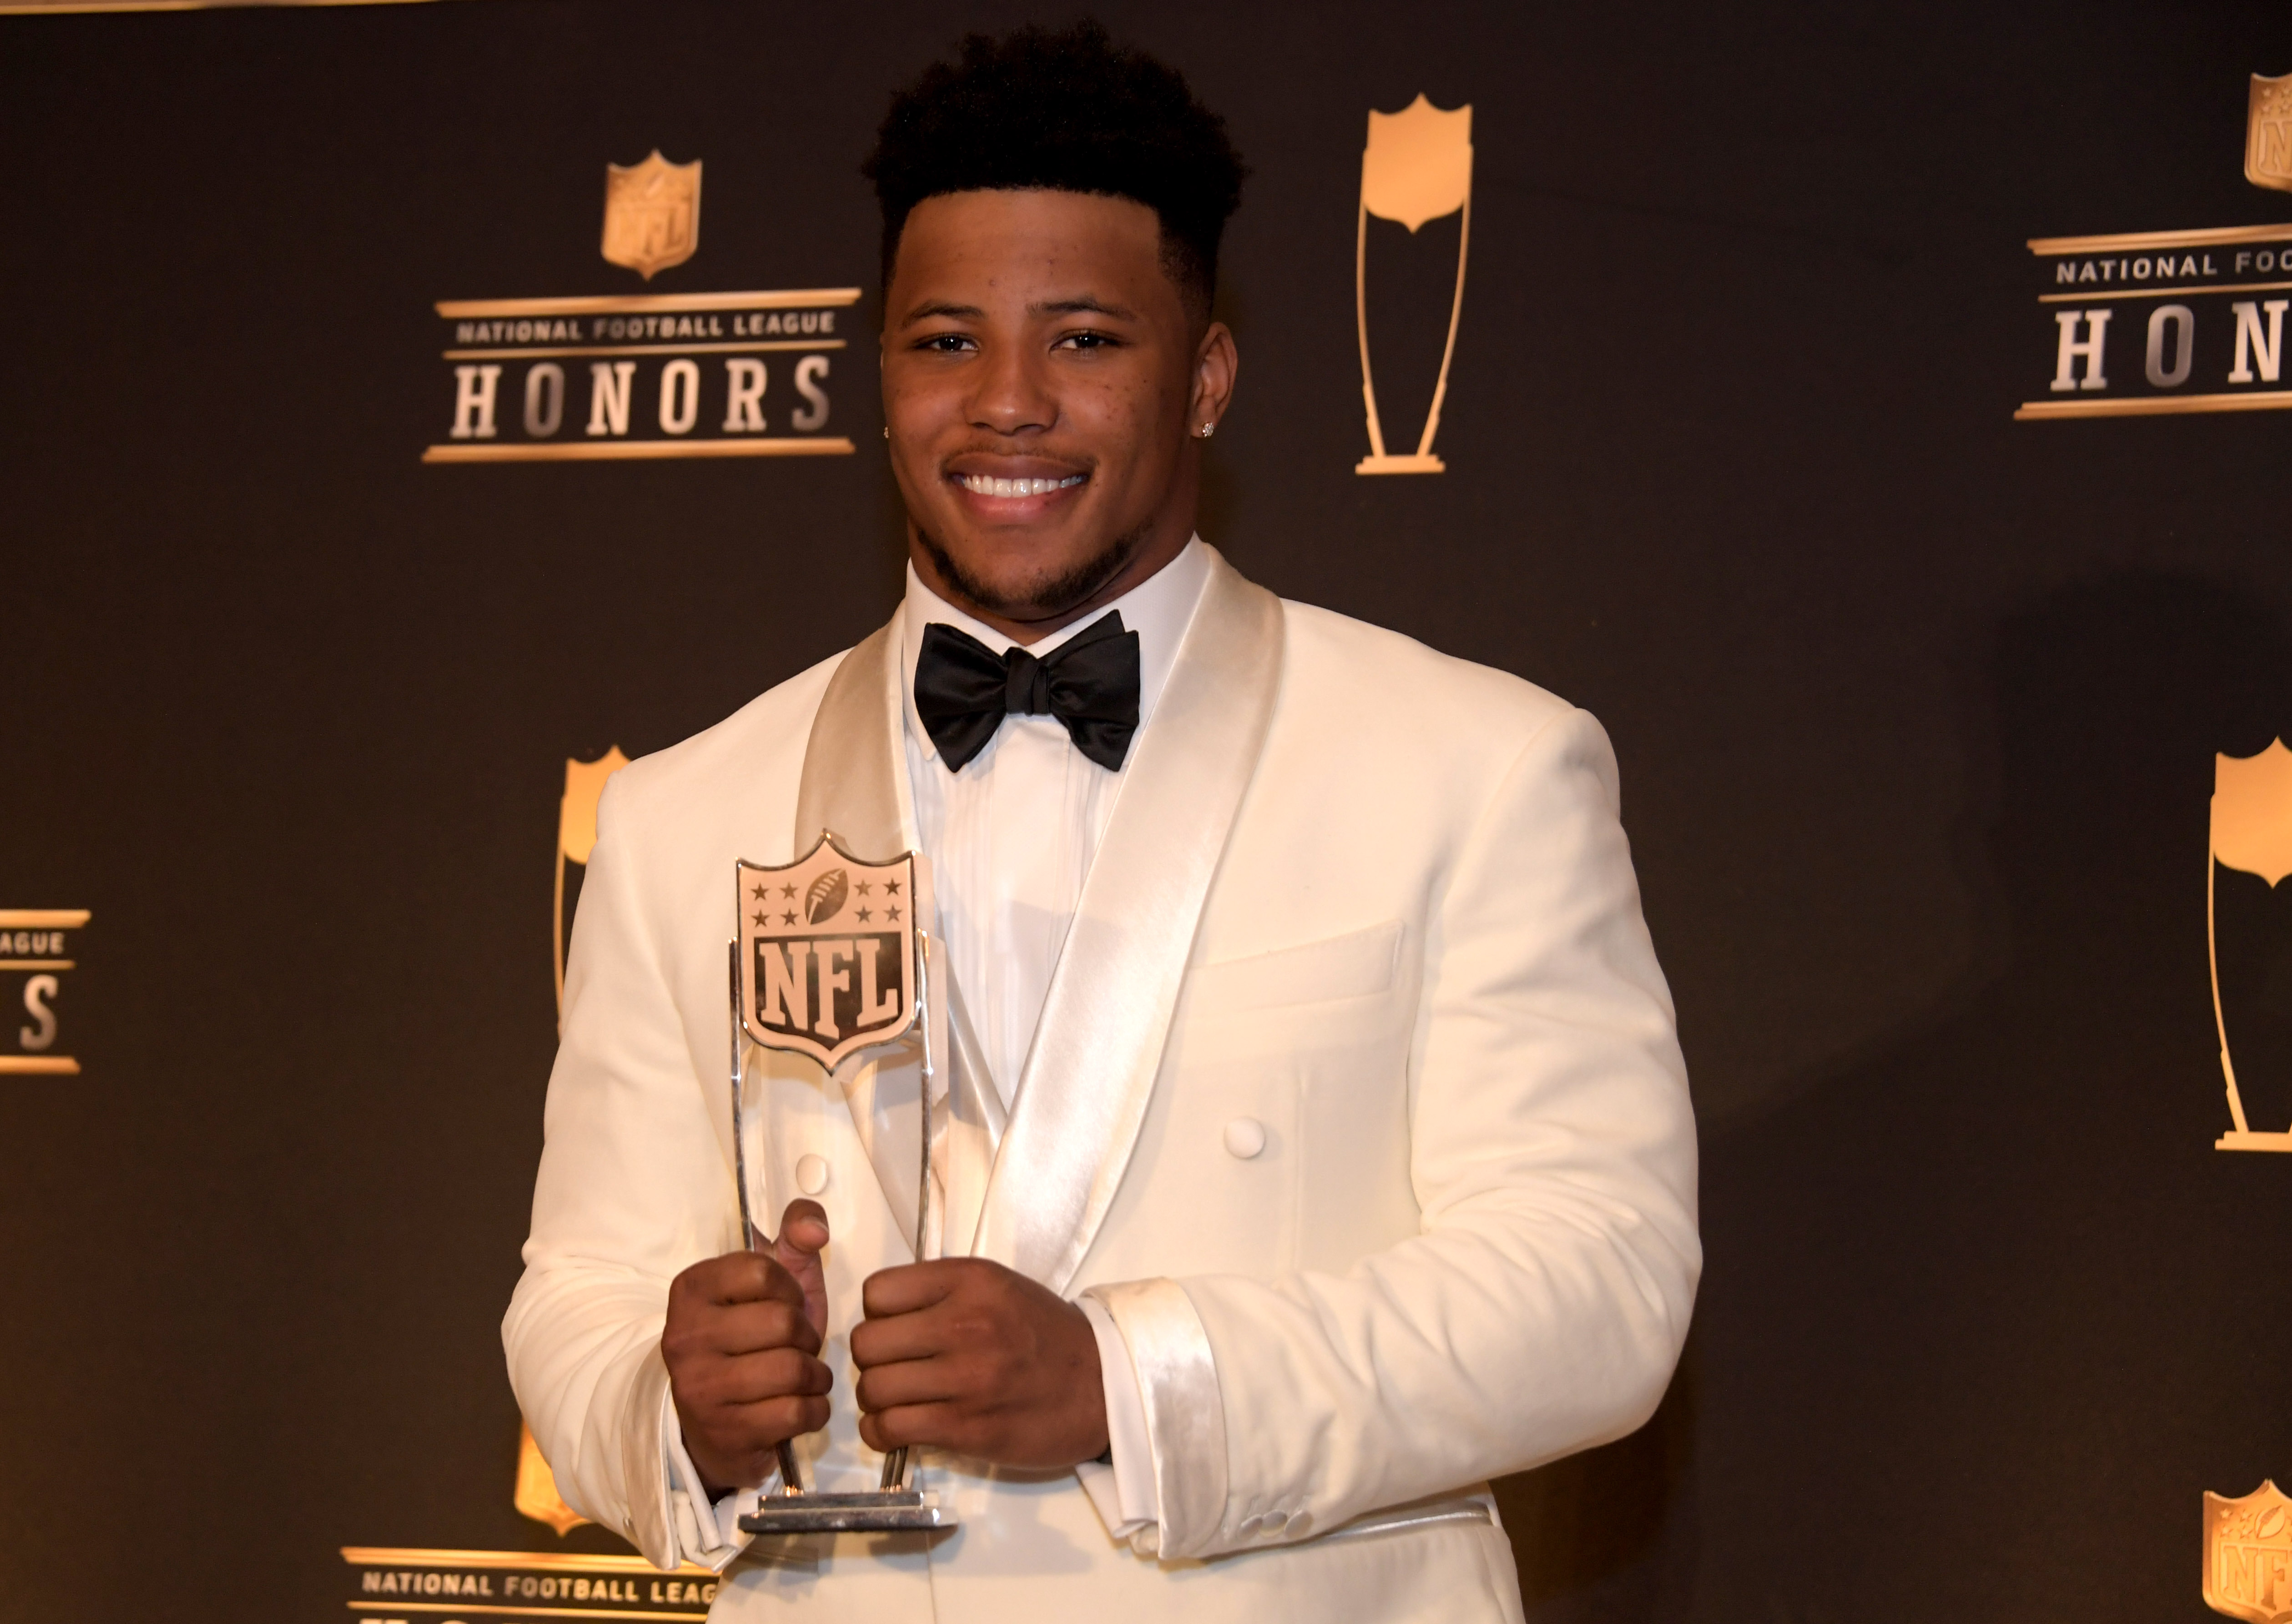 Saquon Barkley out to prove Giants made right decision to draft him, not QB